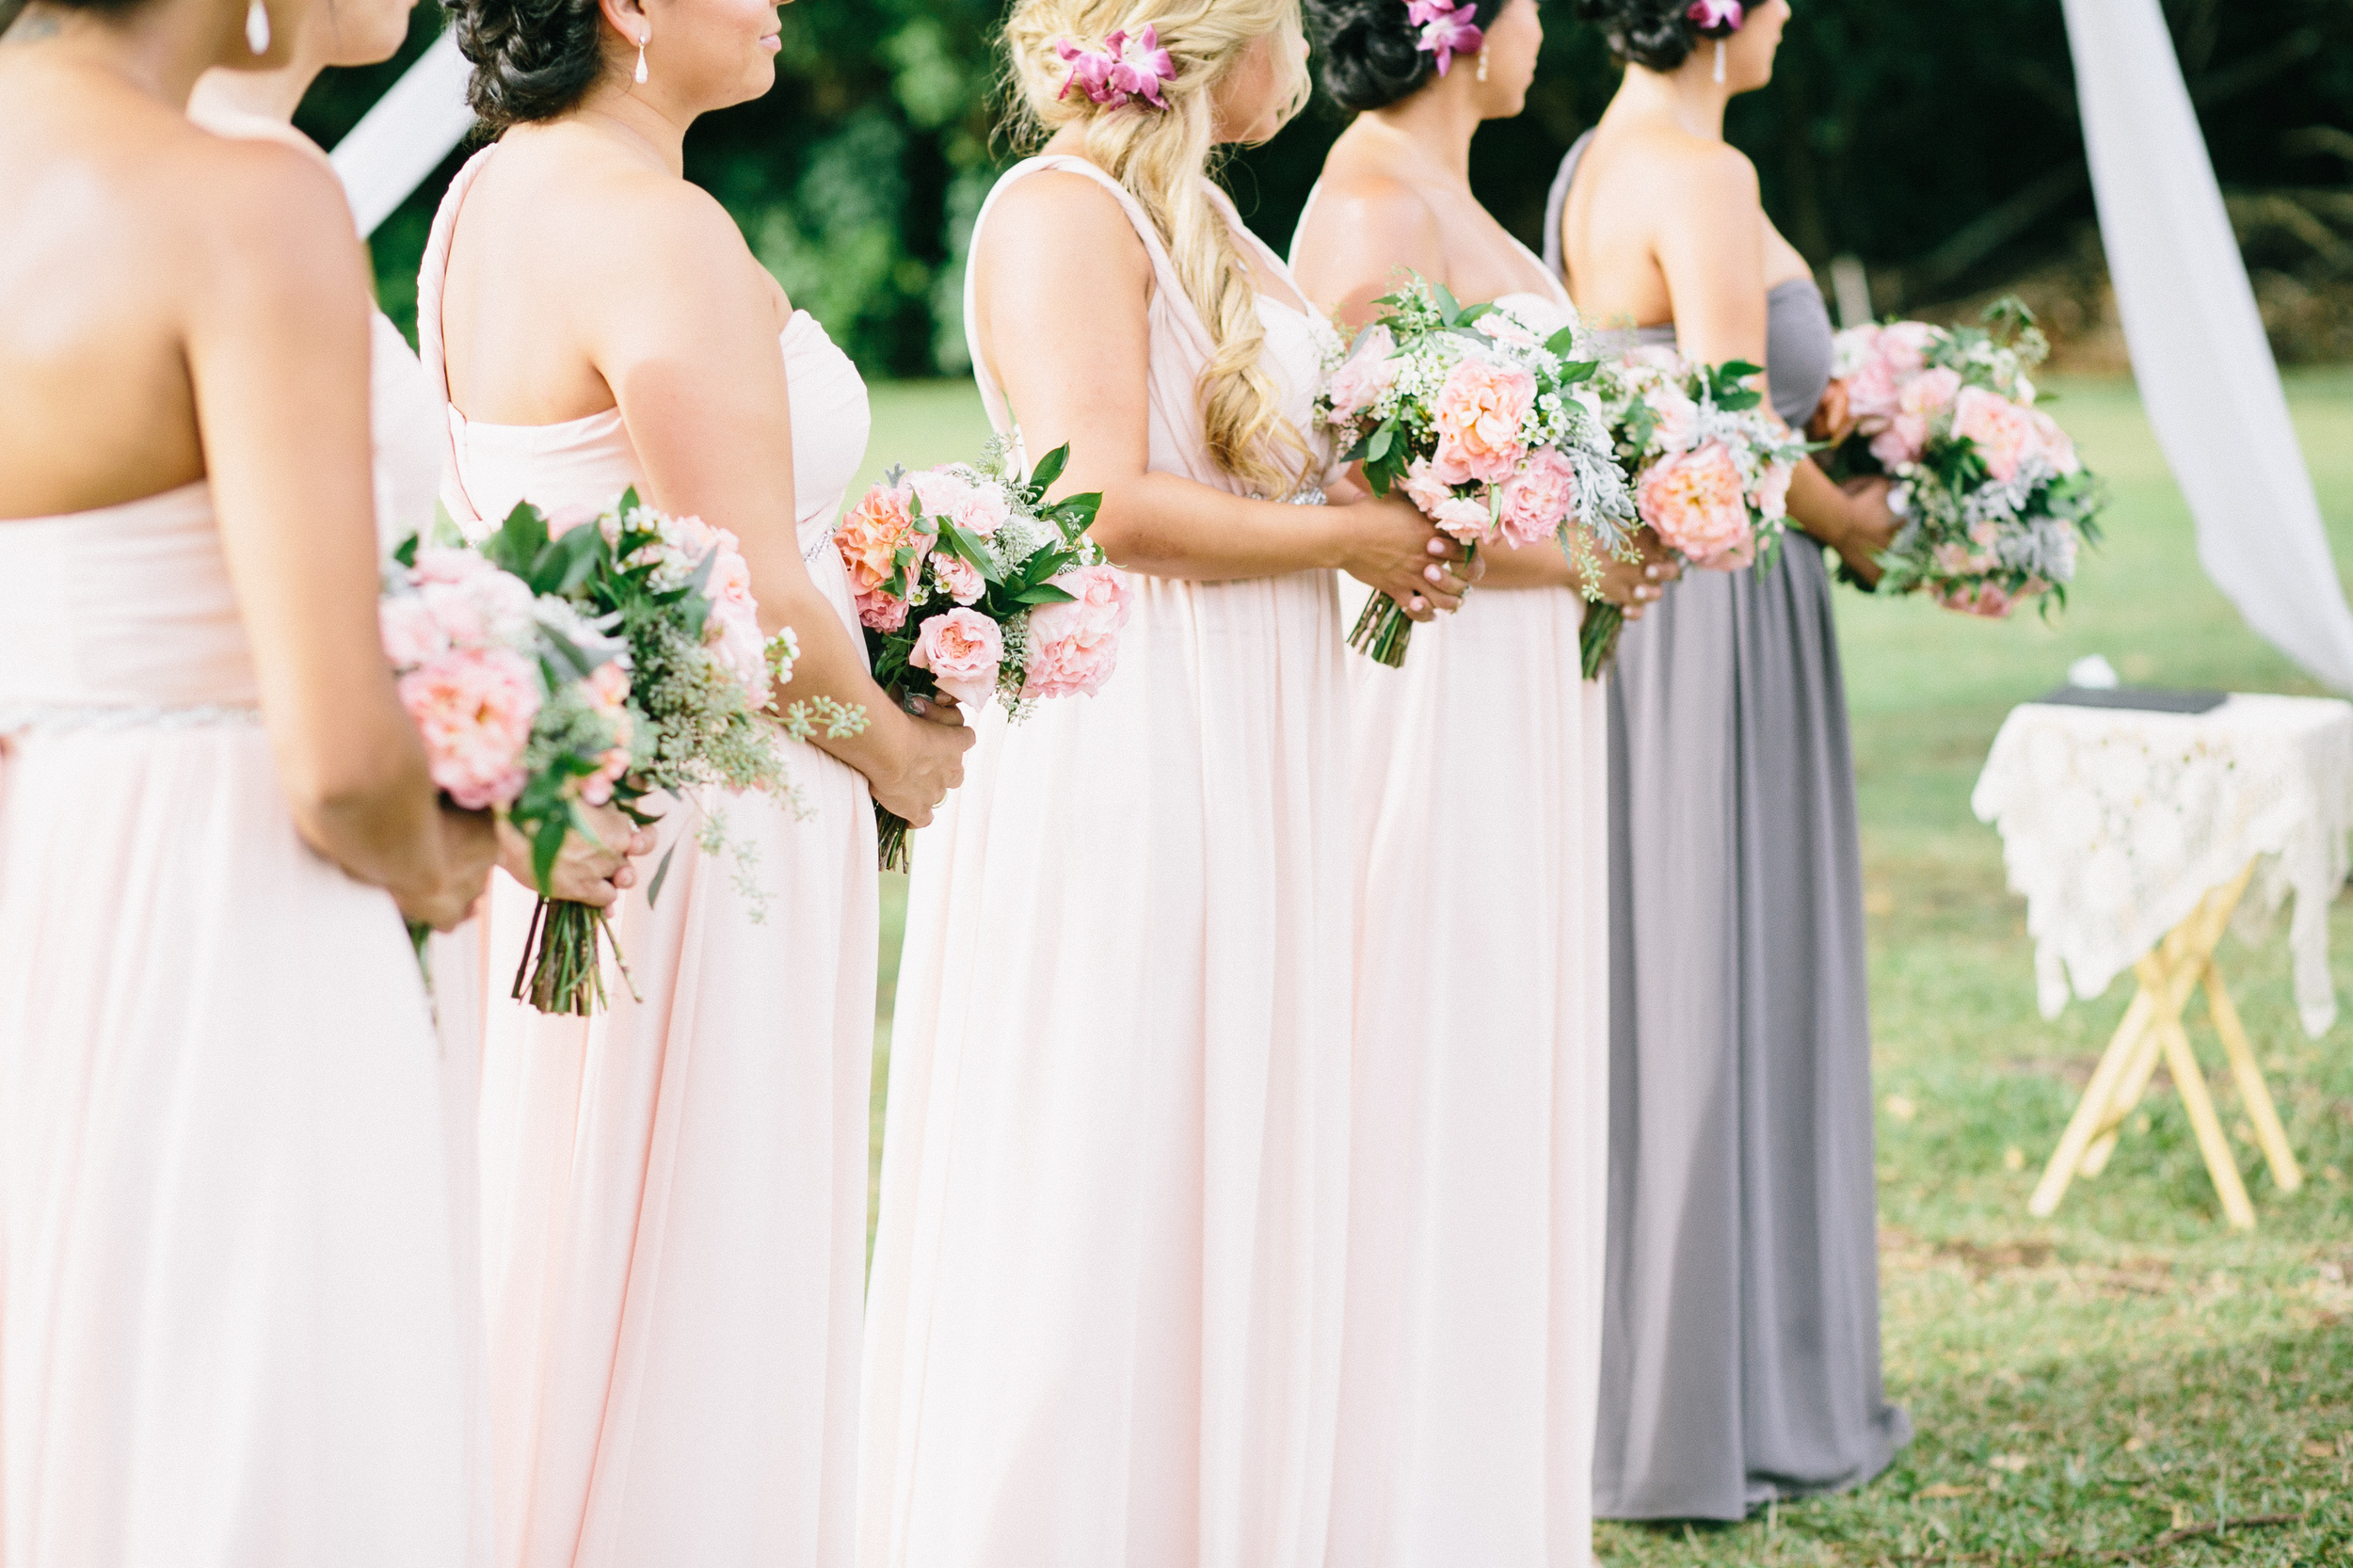 peach and foliage bouquets by Passion Roots | Pinky Photography| Oahu, Hawaii